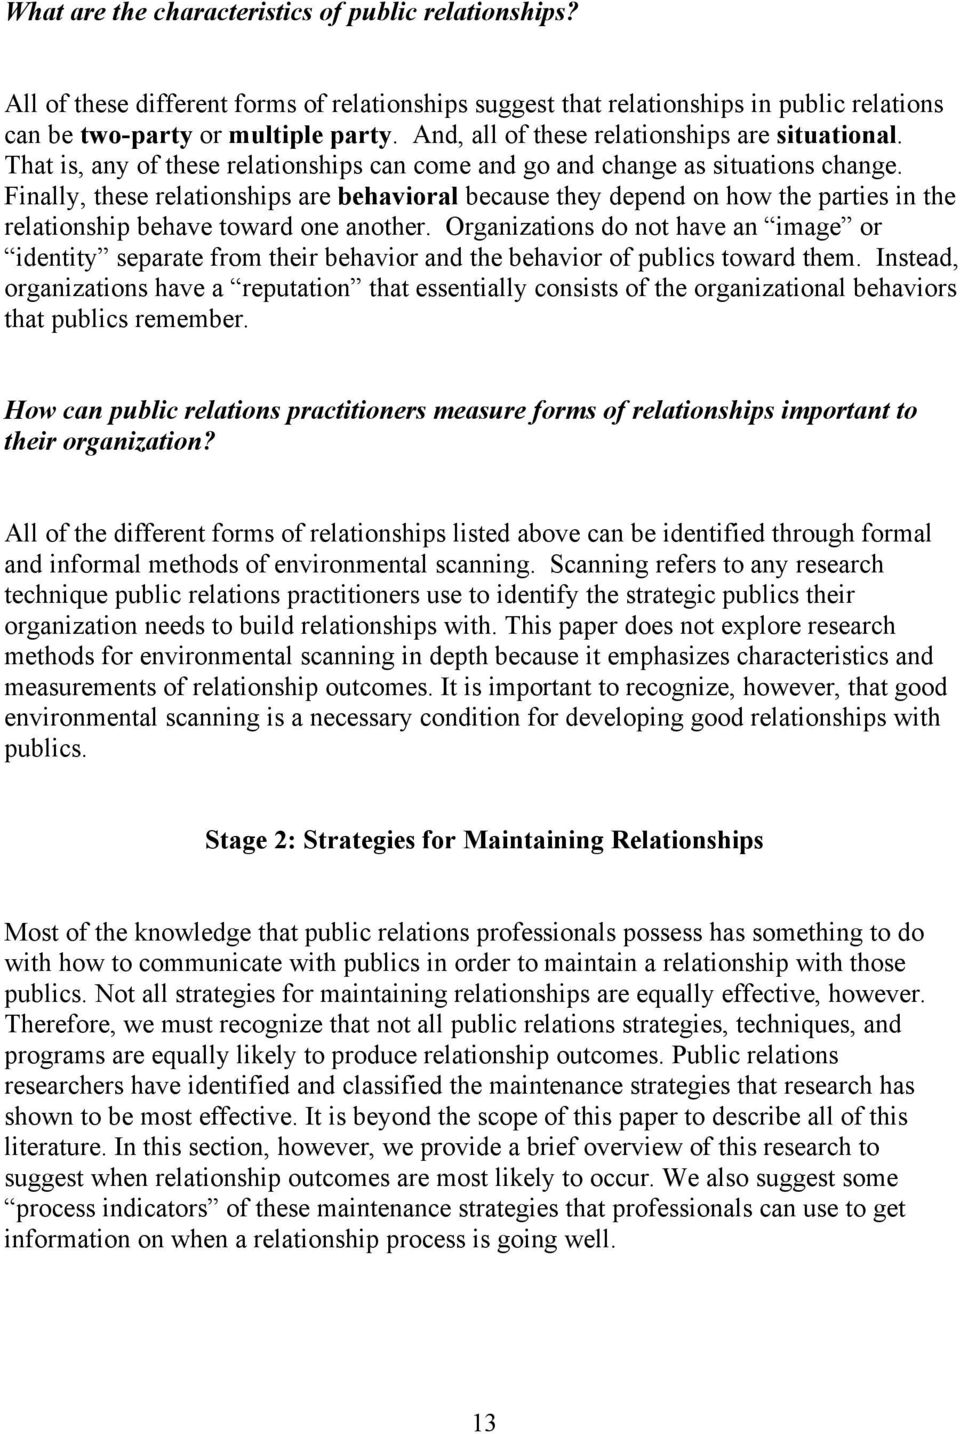 Finally, these relationships are behavioral because they depend on how the parties in the relationship behave toward one another.